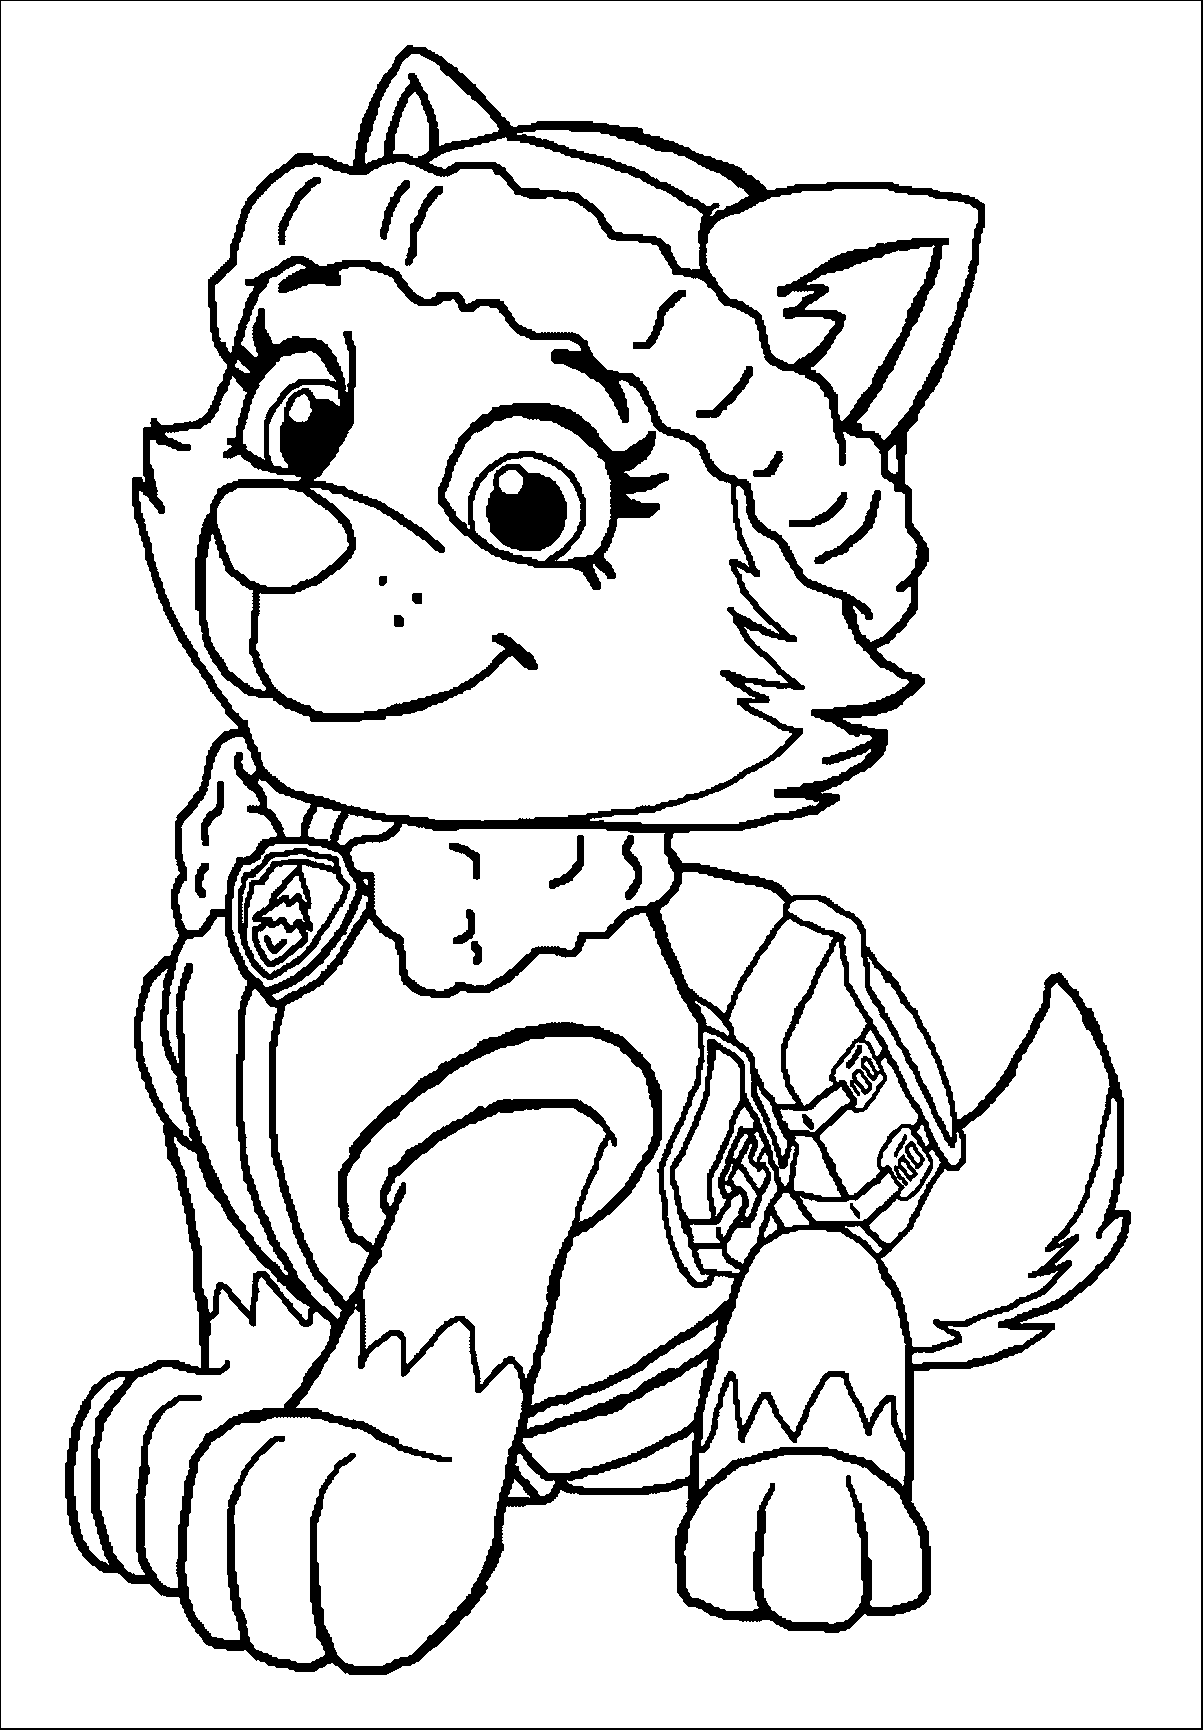 paw patrol coloring pages everest badge paw patrol coloring pages everest at getcoloringscom everest paw badge coloring patrol pages